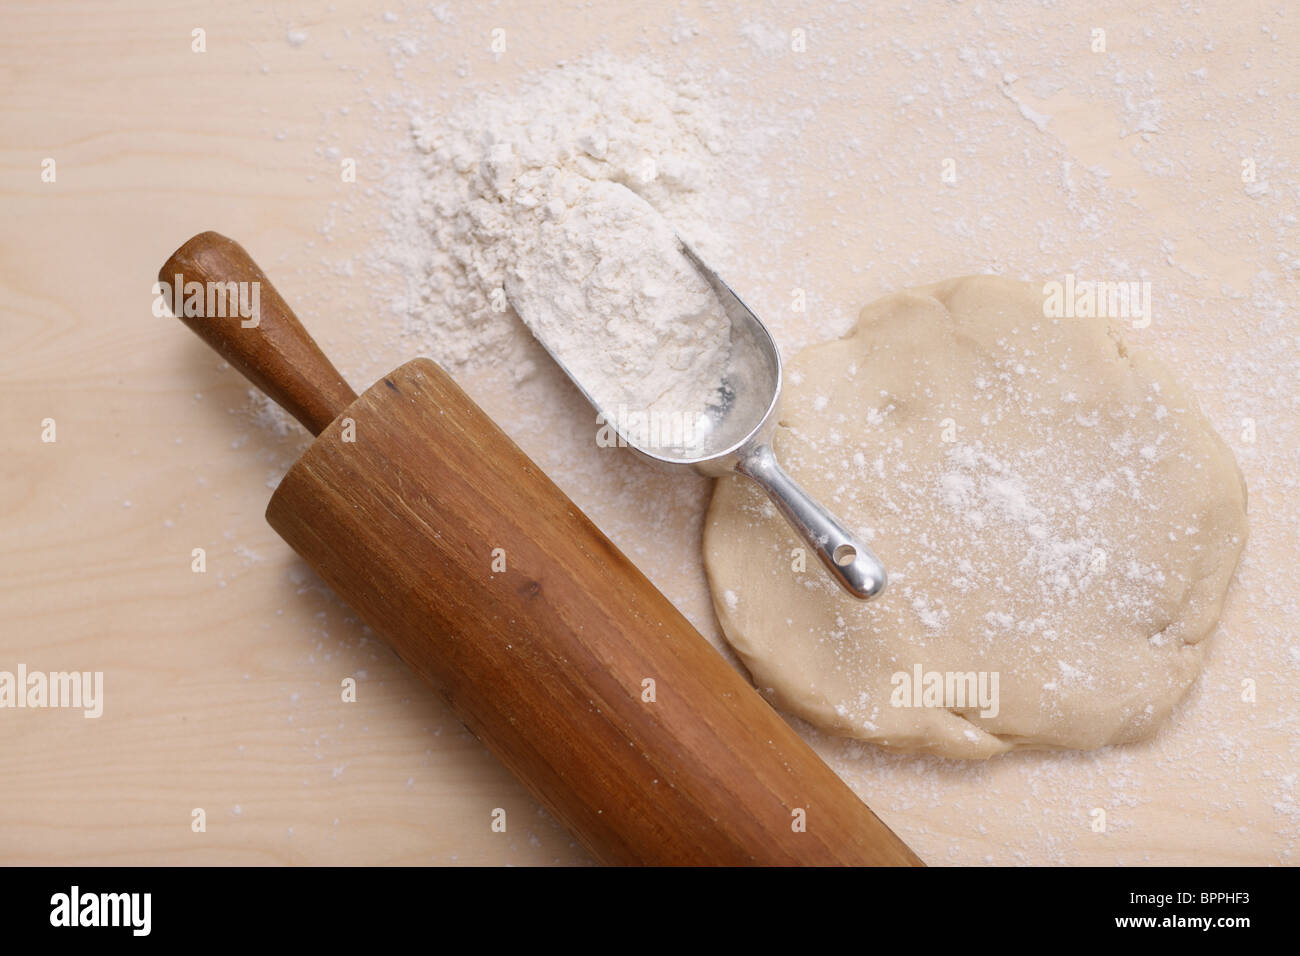 Baking, rolling pin, scoop of flour and dough - Stock Image